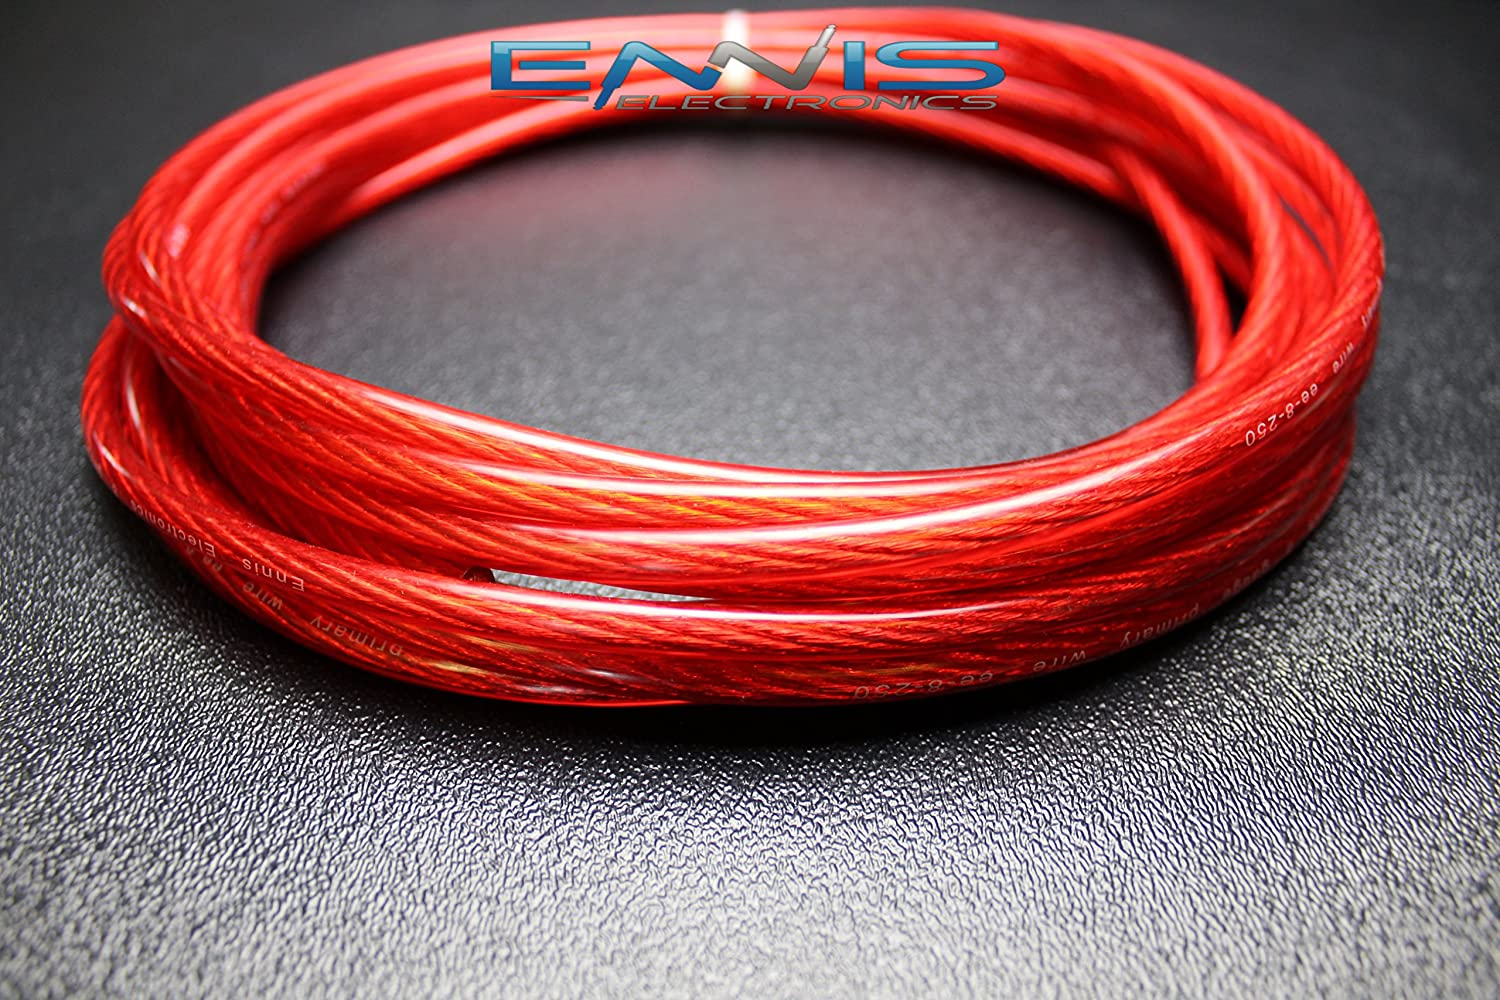 8 GAUGE WIRE 25 FT TOTAL 12.5FT BLACK 12.5FT RED AWG CABLE BY ENNIS ELECTRONICS POWER GROUND STRANDED CAR SOLAR AUTOMOTIVE LYSB06WVWGSXF-ELECTRNCS